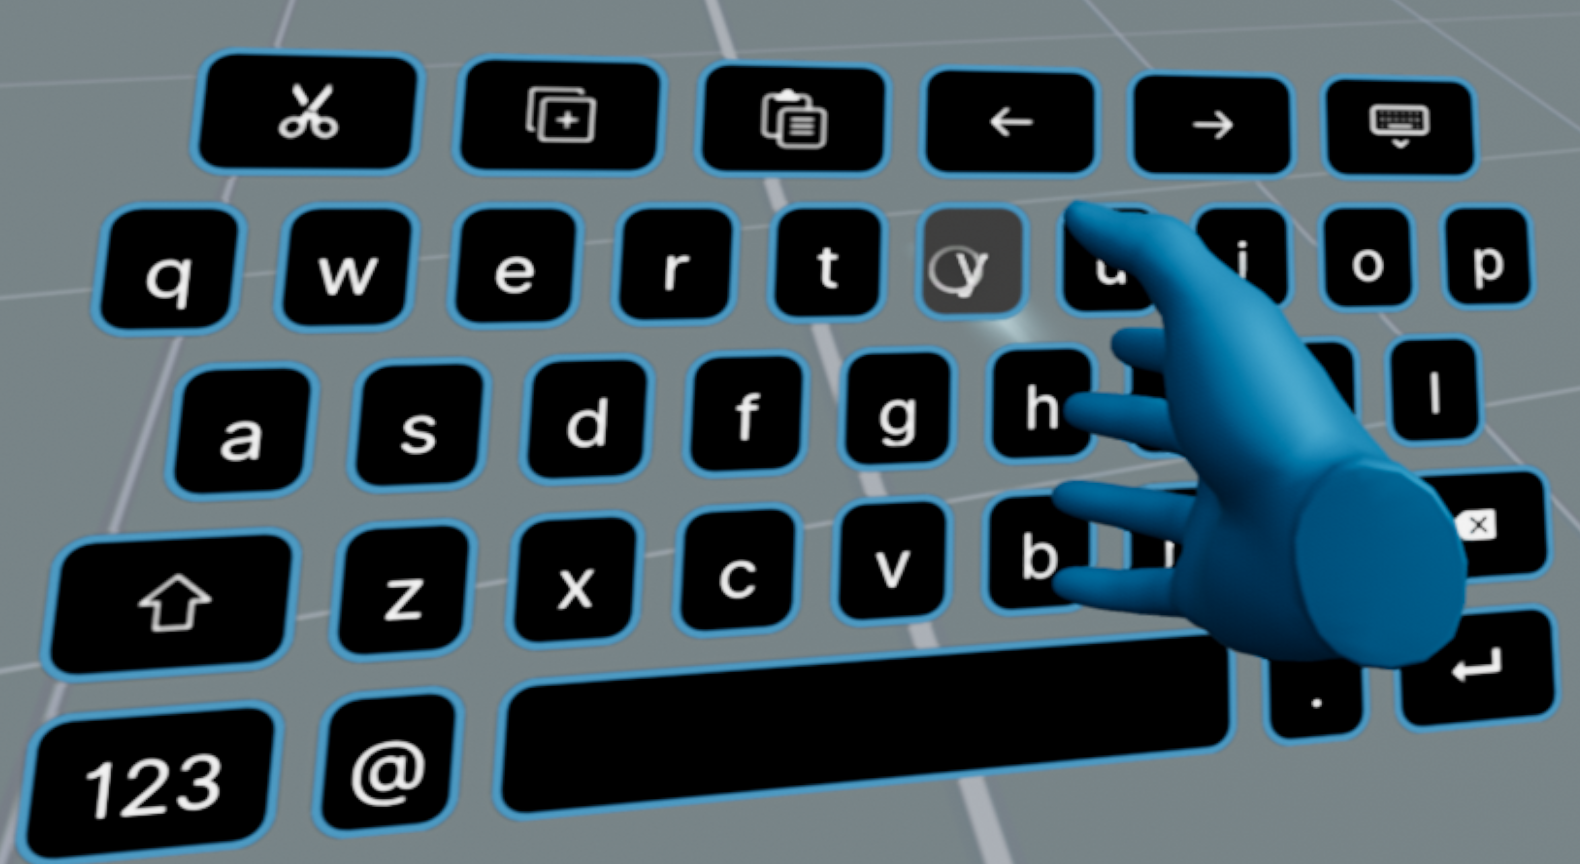 VR_keyboard.png